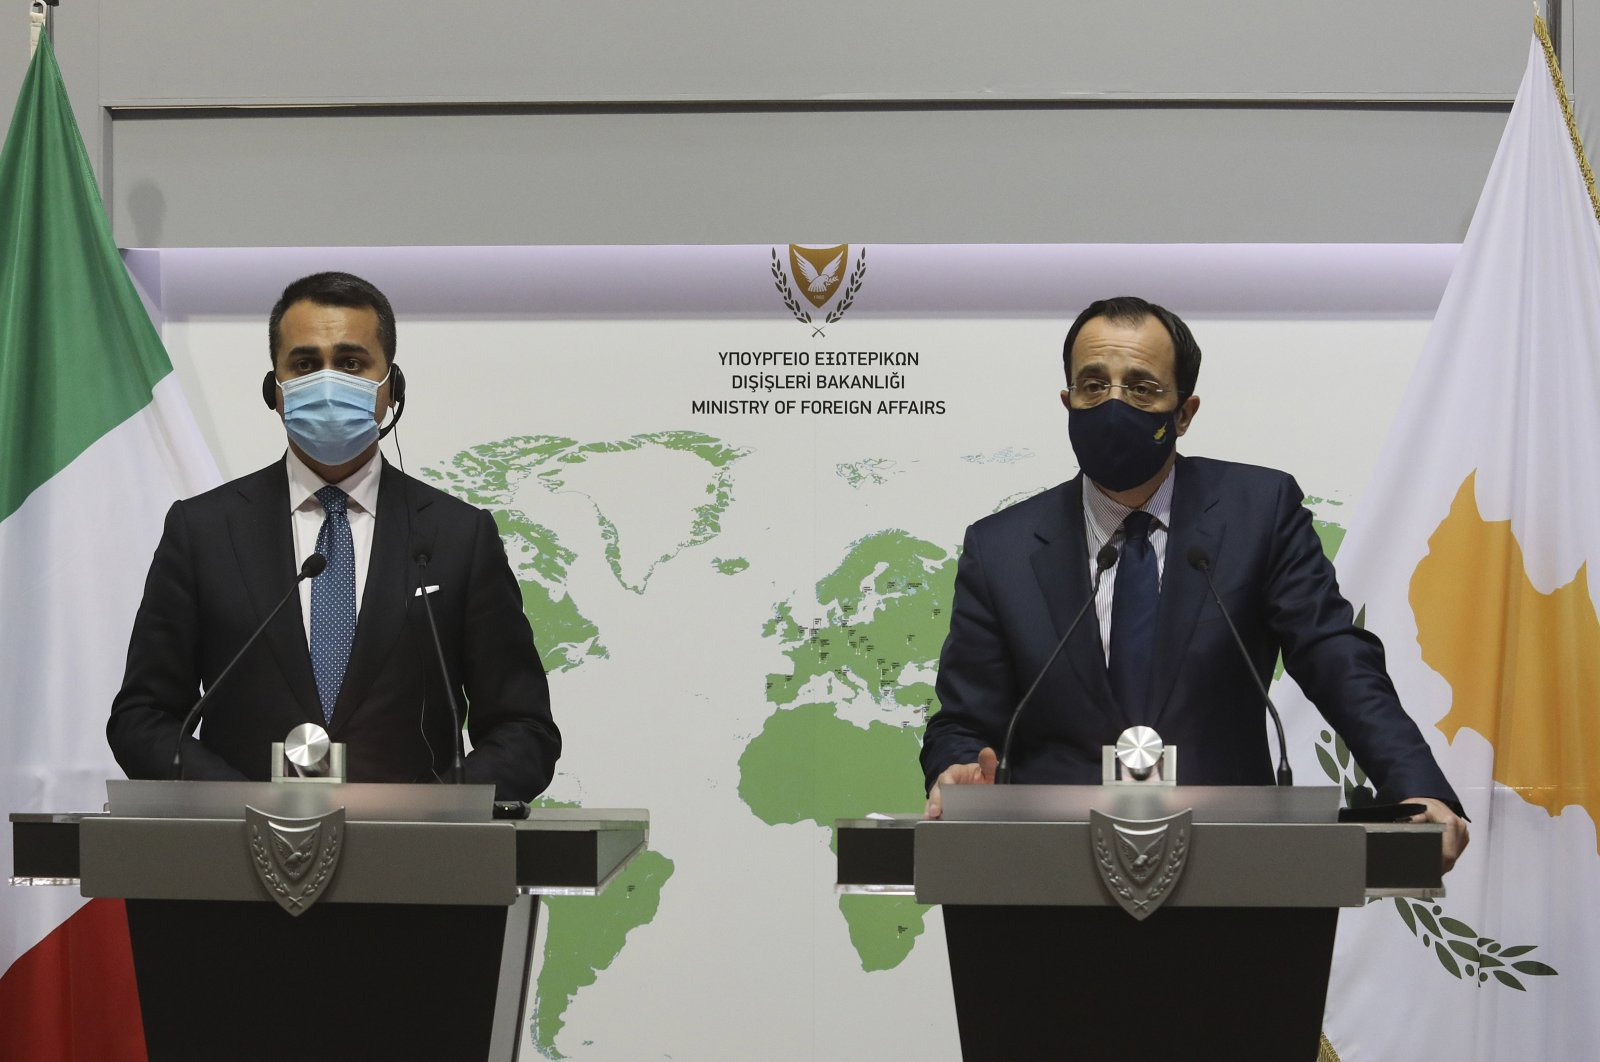 Greek Cypriot Foreign Minister Nicos Christodoulides, right, and Italian Foreign Minister Luigi Di Maio talk to the media during a news conference after their meeting in Nicosia, Greek Cyprus, Tuesday, March 9, 2021. (AP Photo)